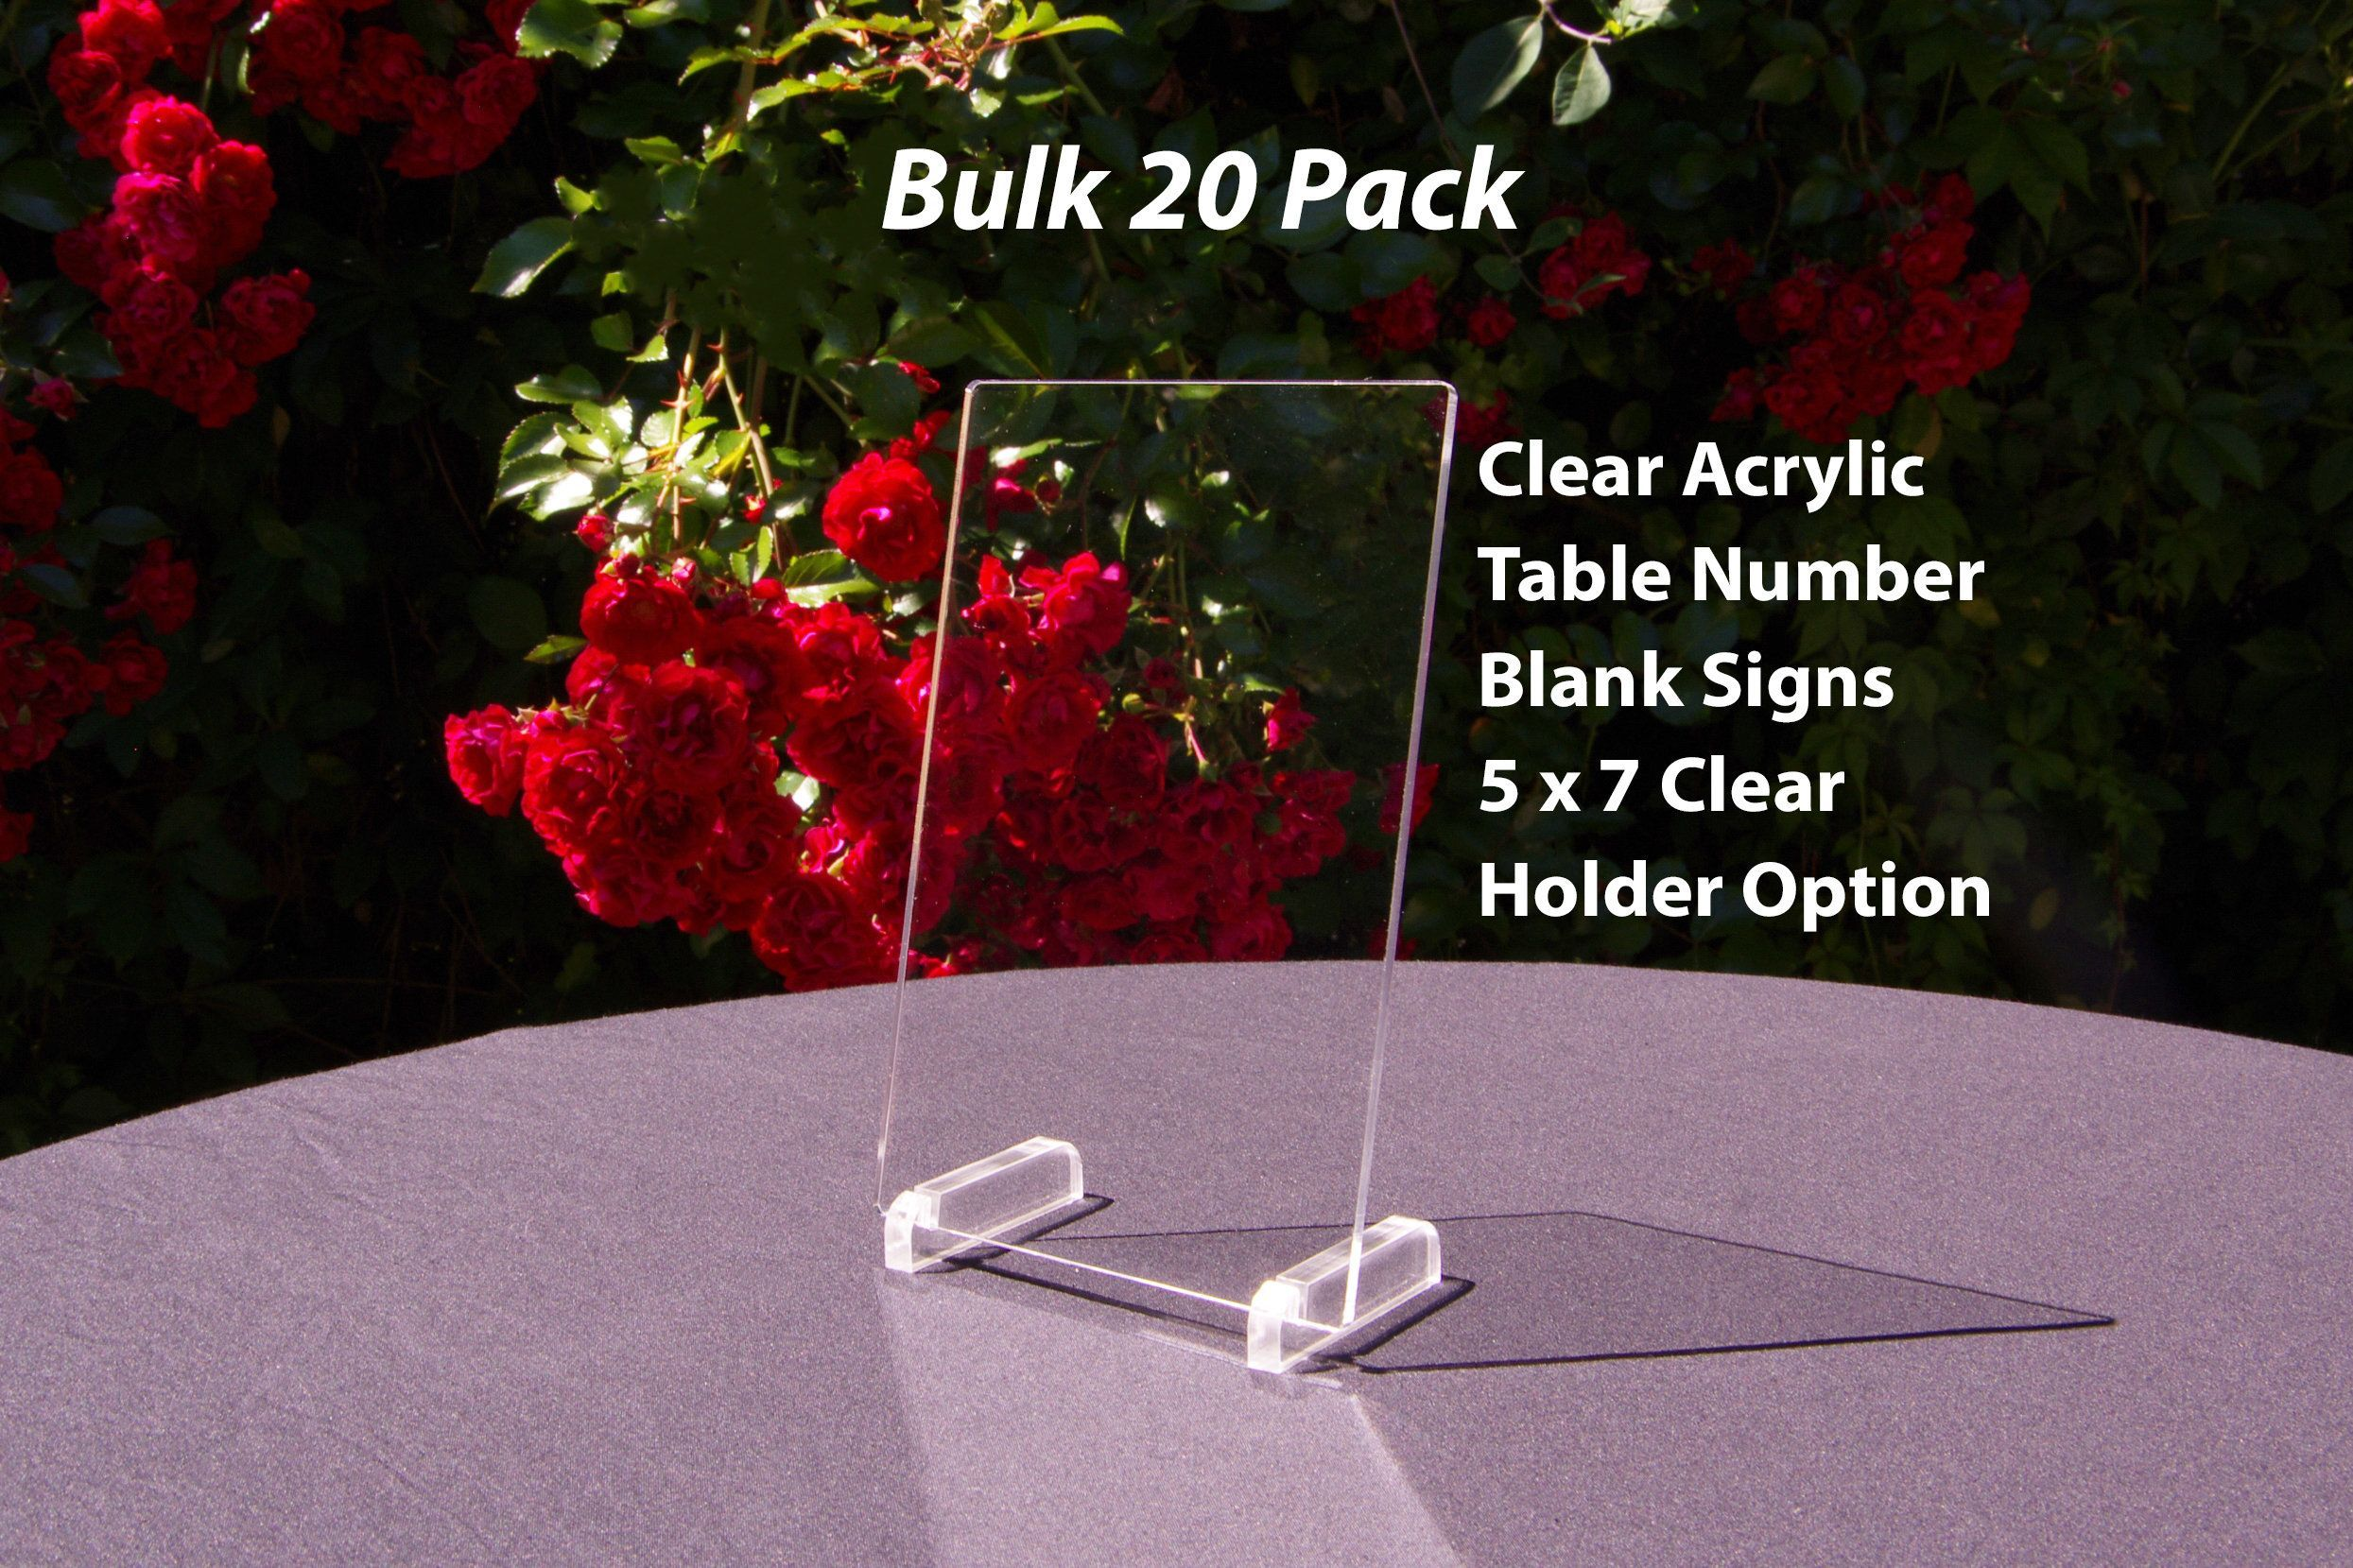 Acrylic Table Numbers Blanks